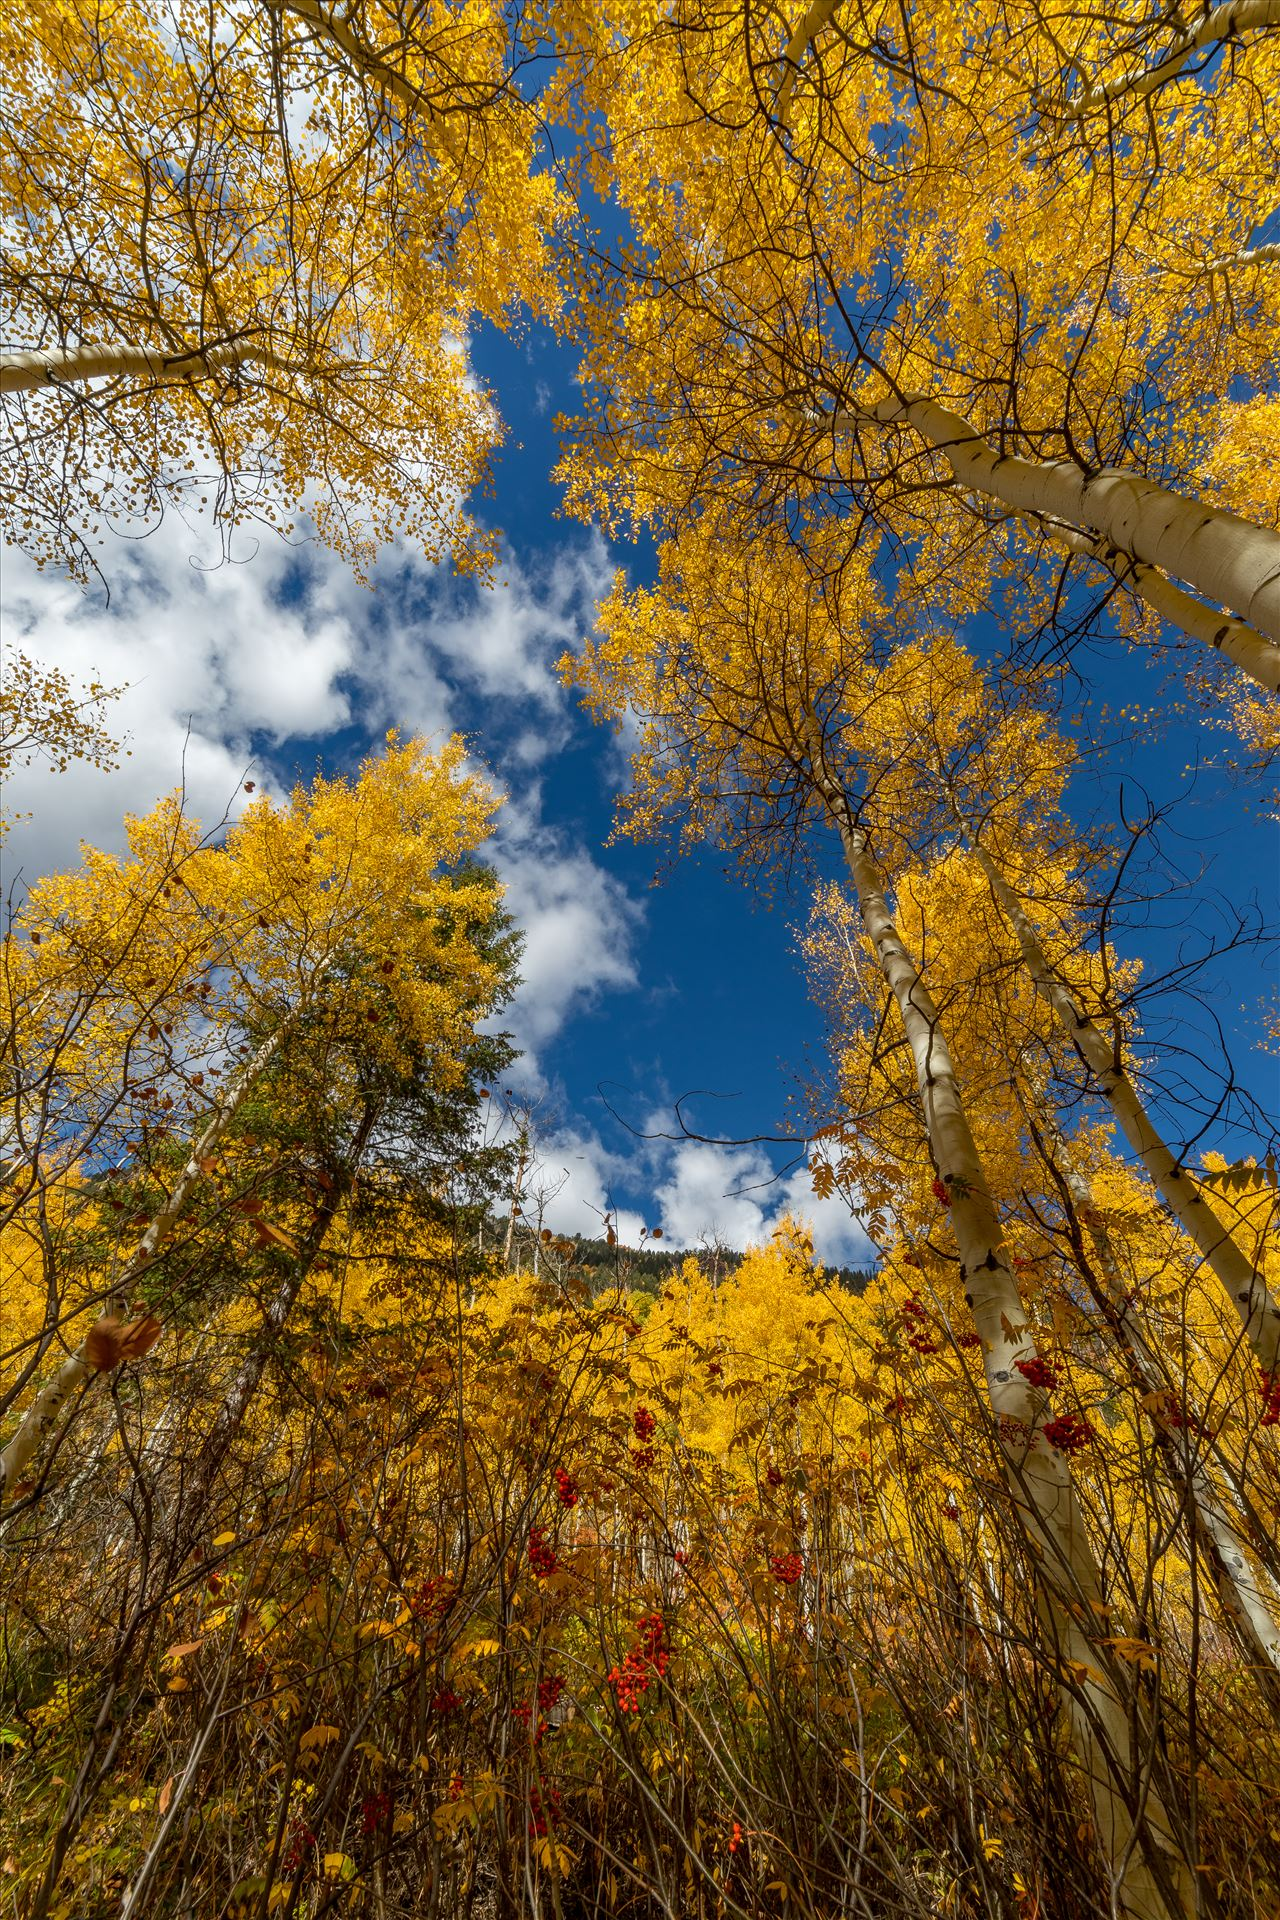 Aspens to the Sky No 2 - Aspens and wild berries in Fall. Taken near Maroon Creek Drive near Aspen, Colorado. by D Scott Smith